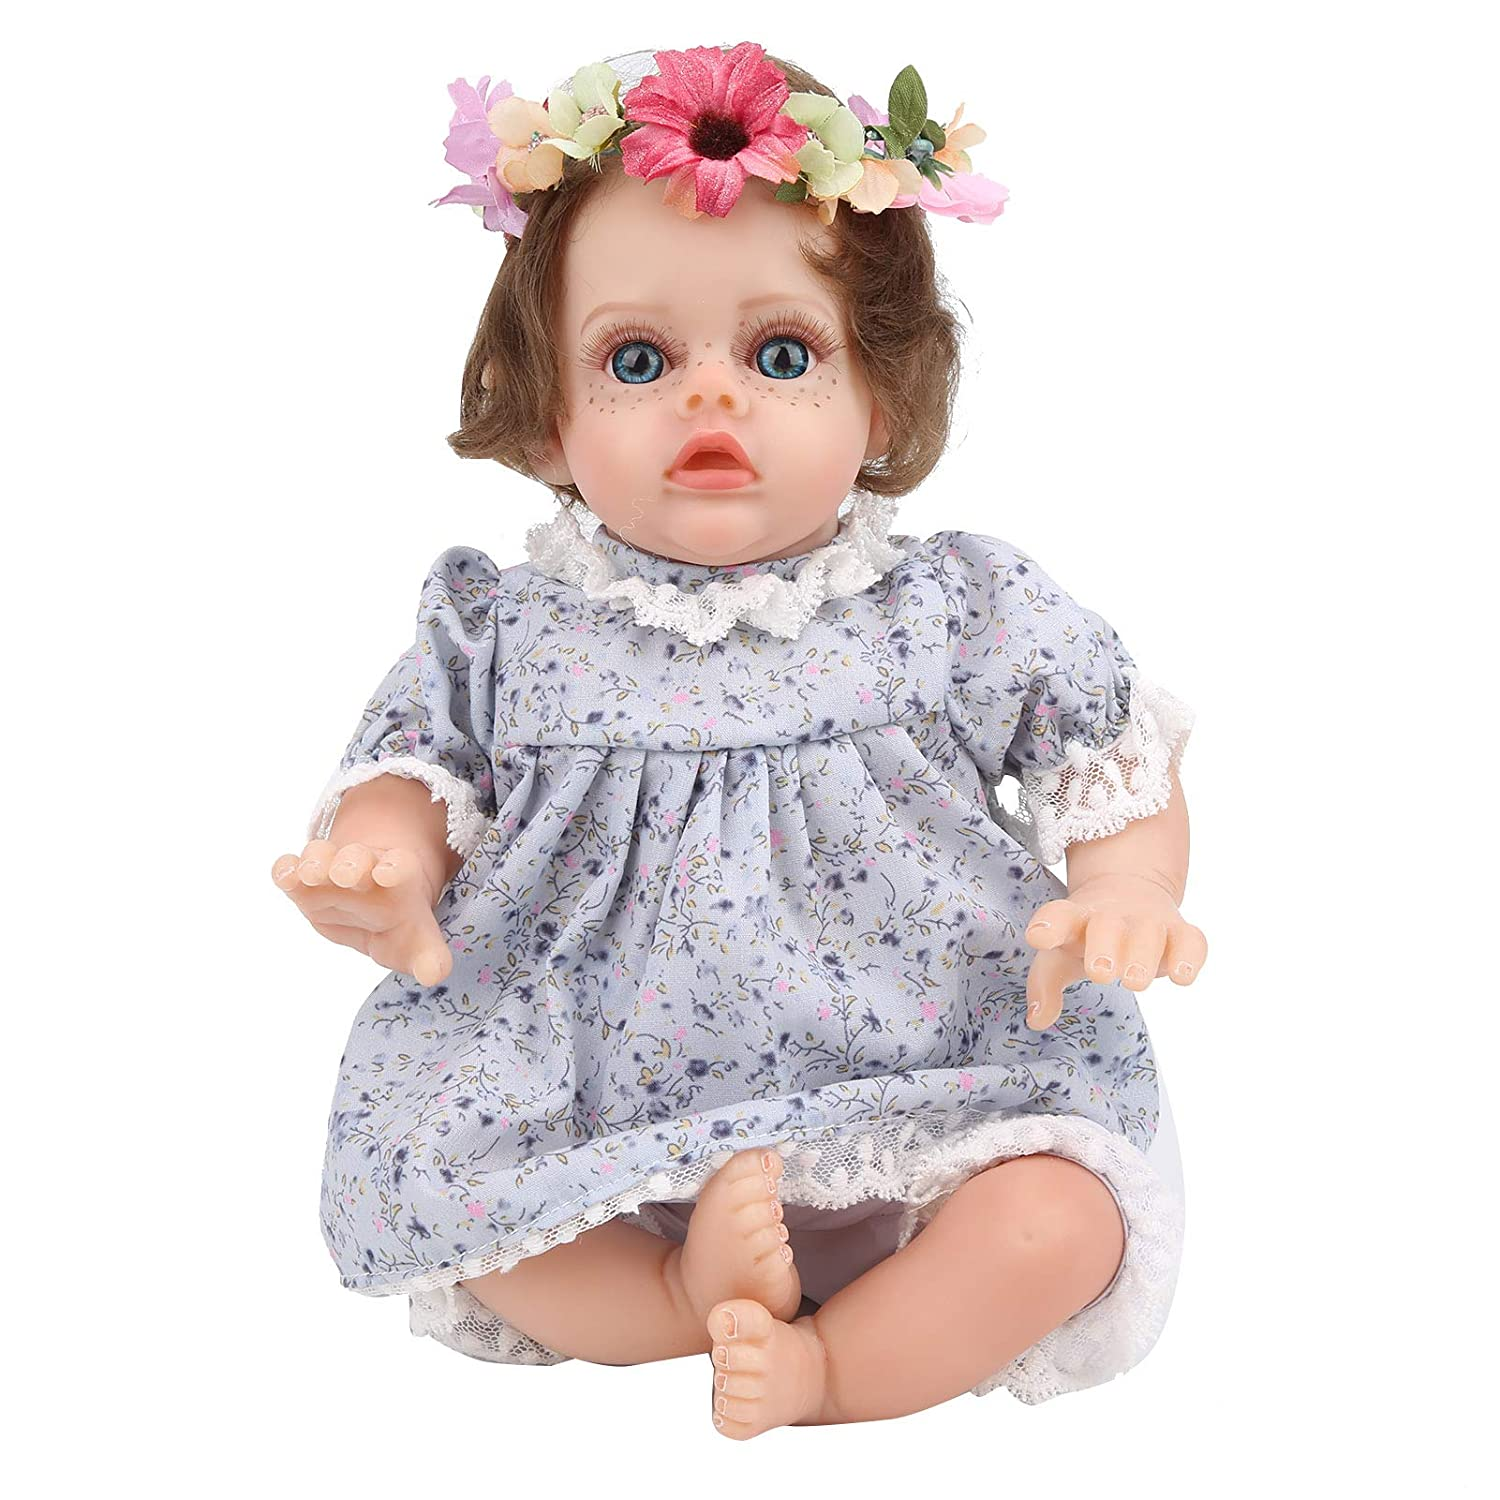 Clear Ranking integrated 1st place Acrylic Eyes Lifelike Doll Photography Fi 4 Props Limbs online shopping 3